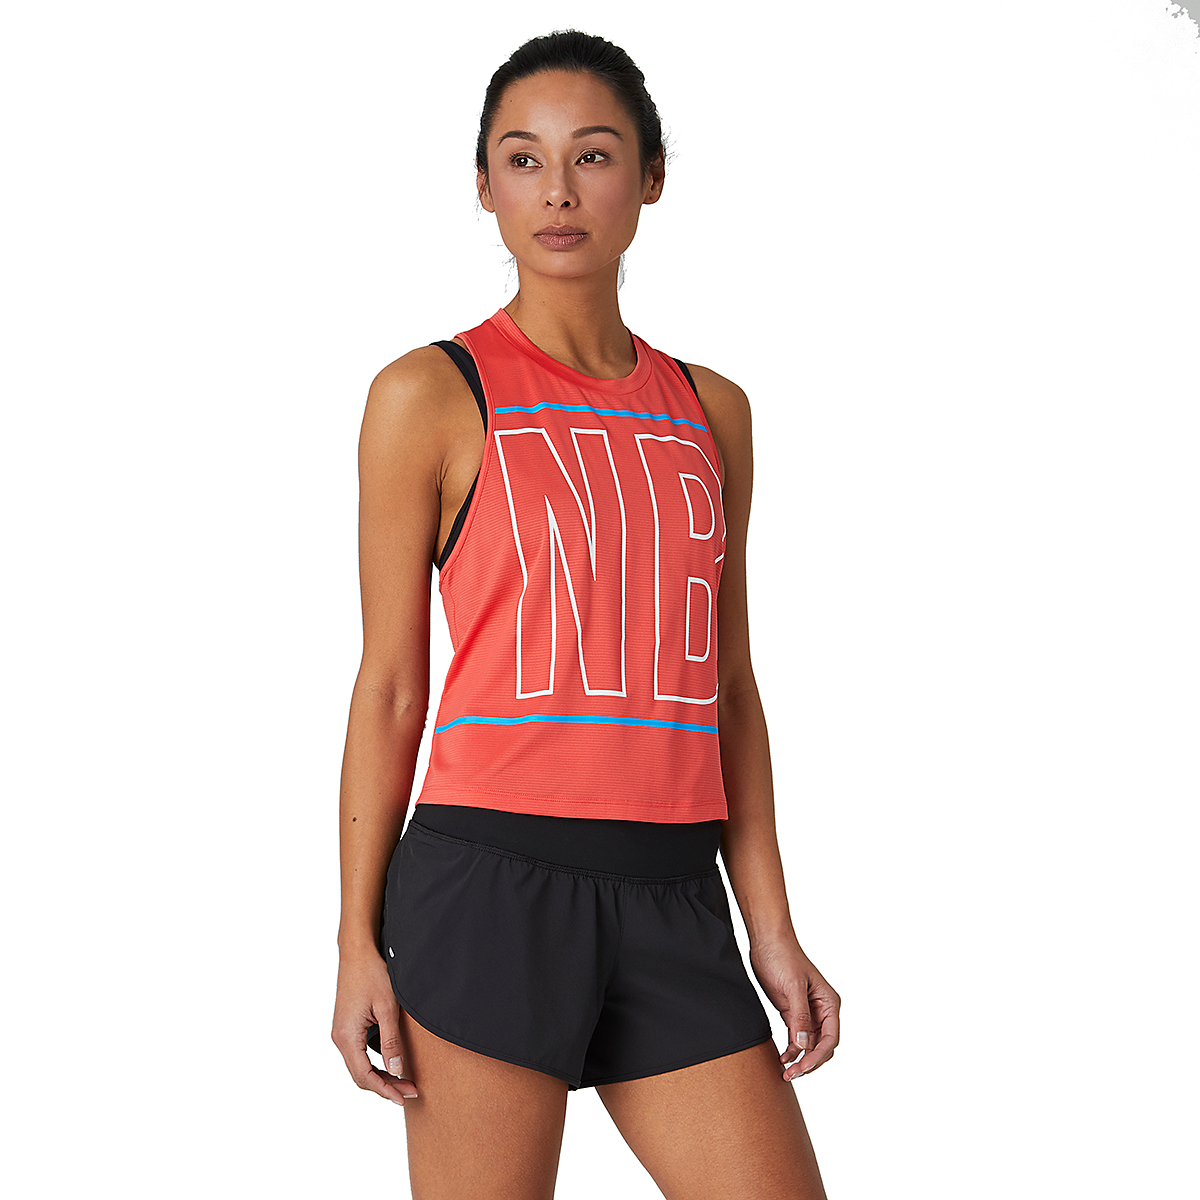 Women's New Balance Printed Fast Flight Crop Tank - Color: Toro Red - Size: S, Toro Red, large, image 1